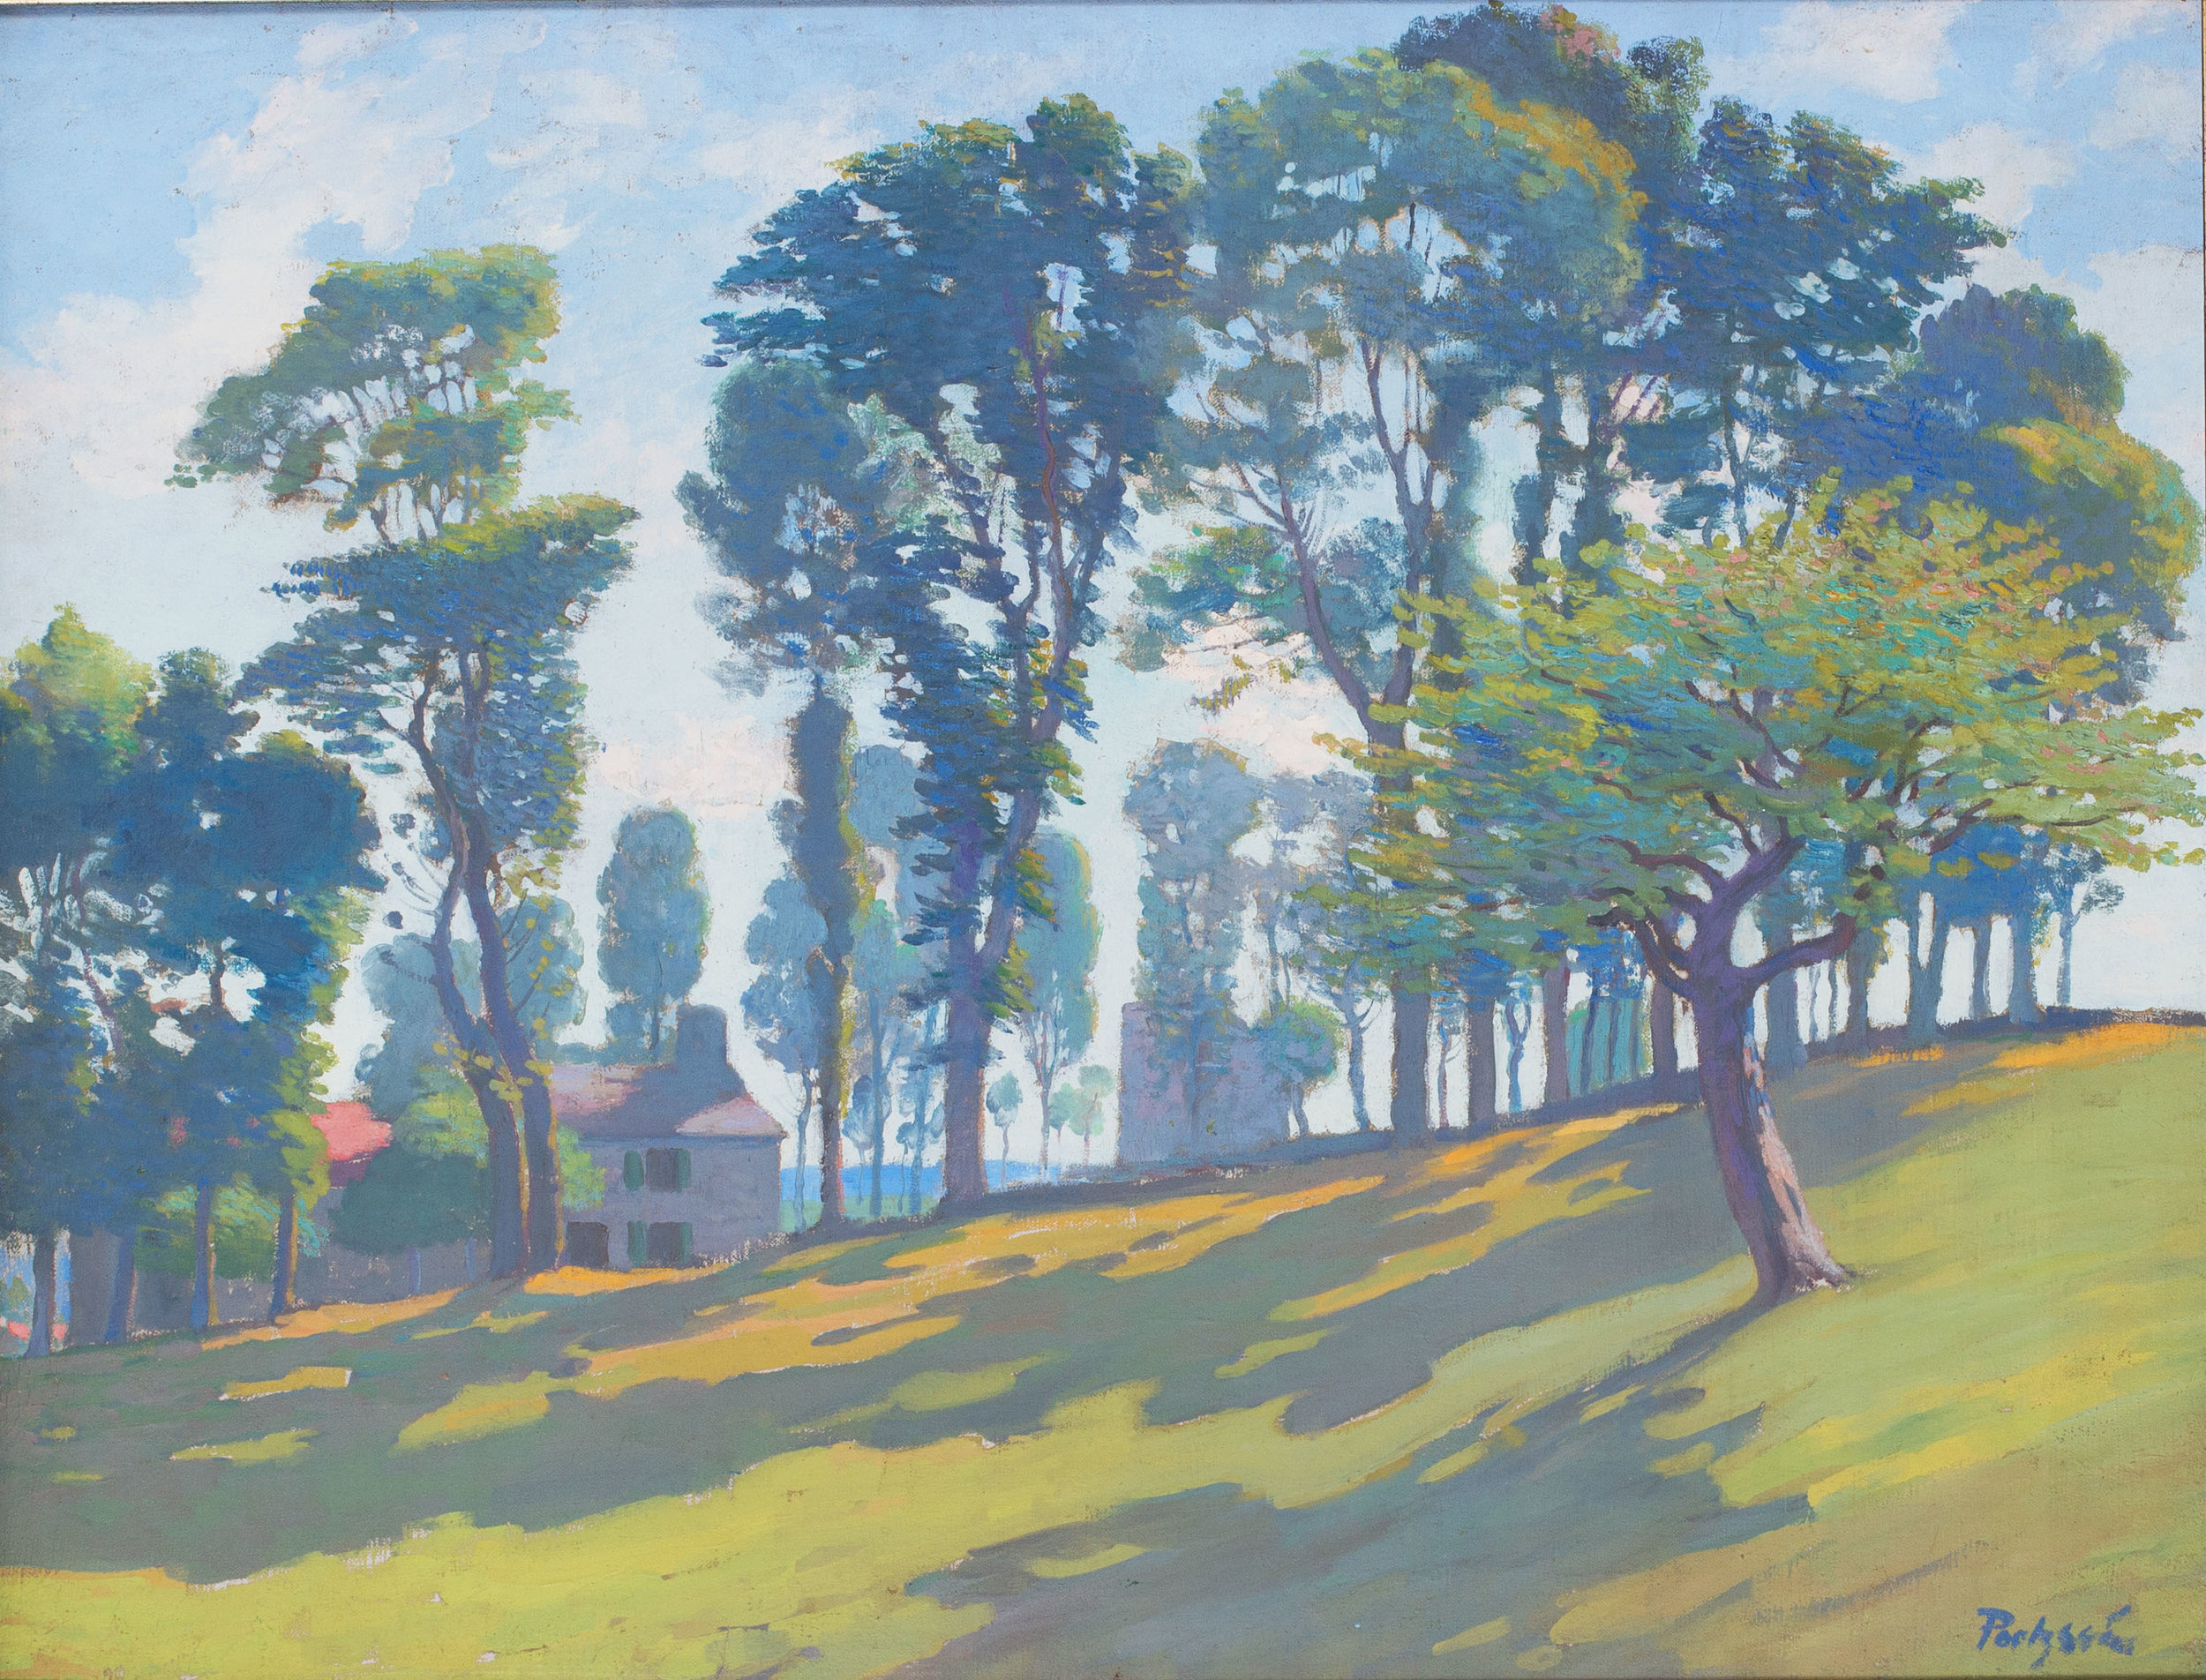 Gustave Poetzsch (Swiss, 1870- 1950)    Les arbres aux environs d'Yssingeaux    Oil on canvas Sigend 'Poetzch' (lower right) 30.3/4 x 25in. (78 x 63.5cm.) dimensions including frame  Condition: Oil on canvas, not relined. Good impasto, paint surface in good order. Good condition overall, In a silvered gilt frame.   Price: £3500